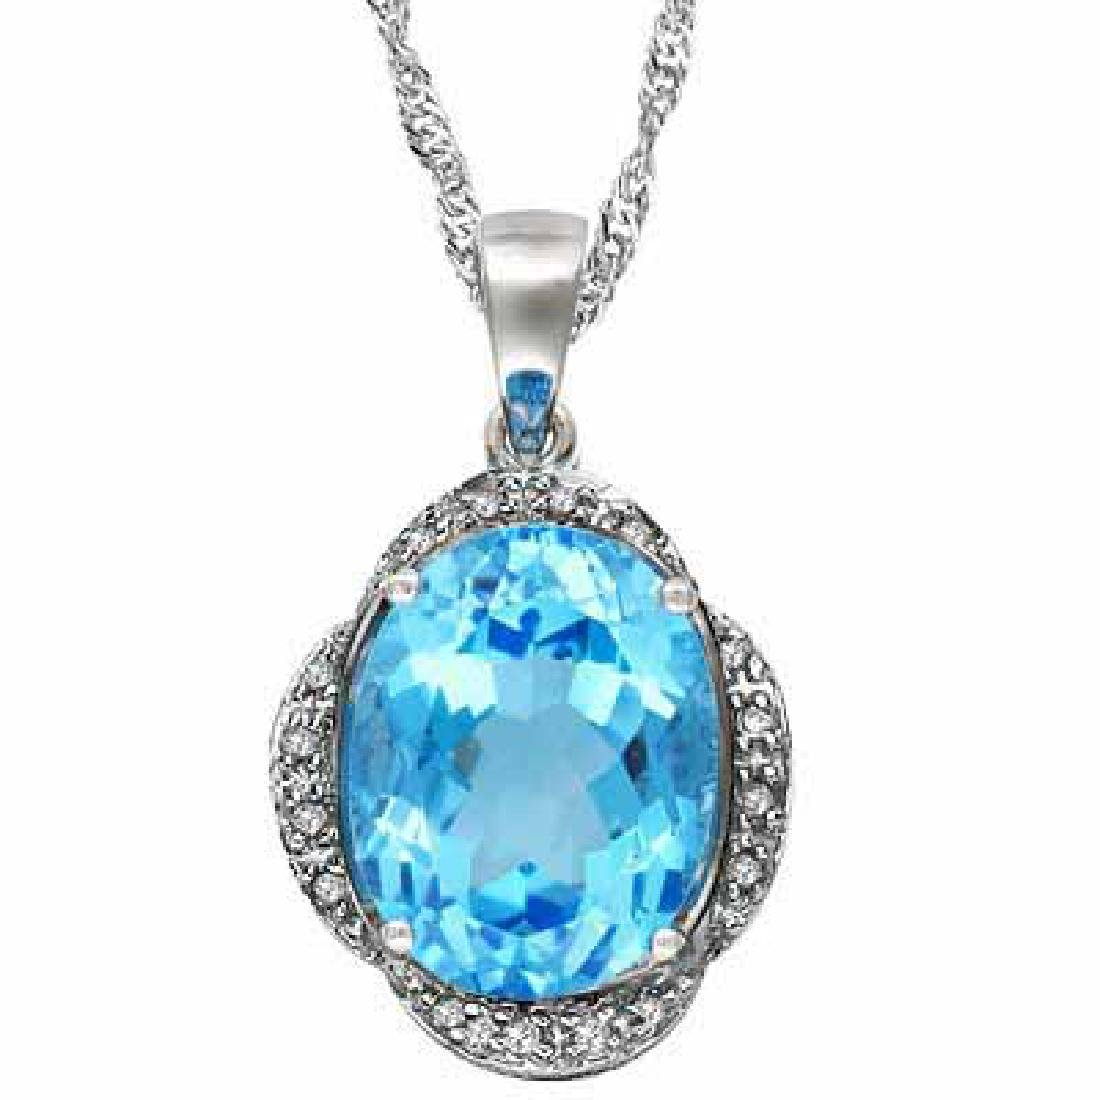 5 1/4 CARAT BABY SWISS BLUE TOPAZ & DIAMOND 925 STERLIN